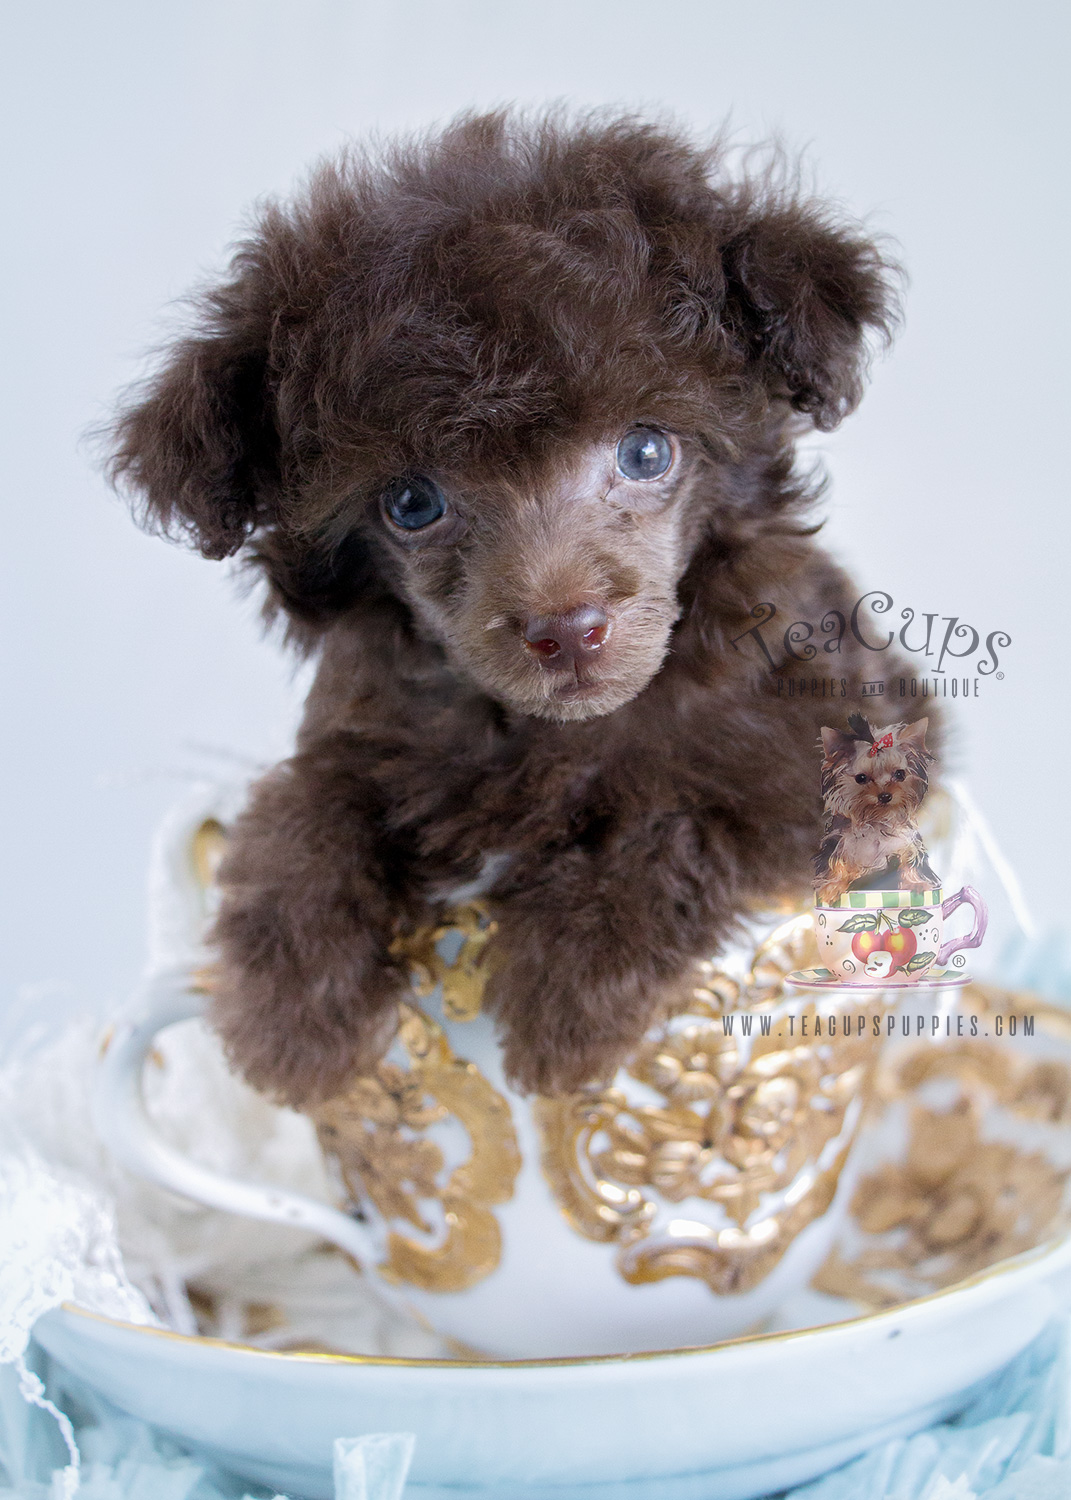 Female Chocolate Poodle For Sale in Davie